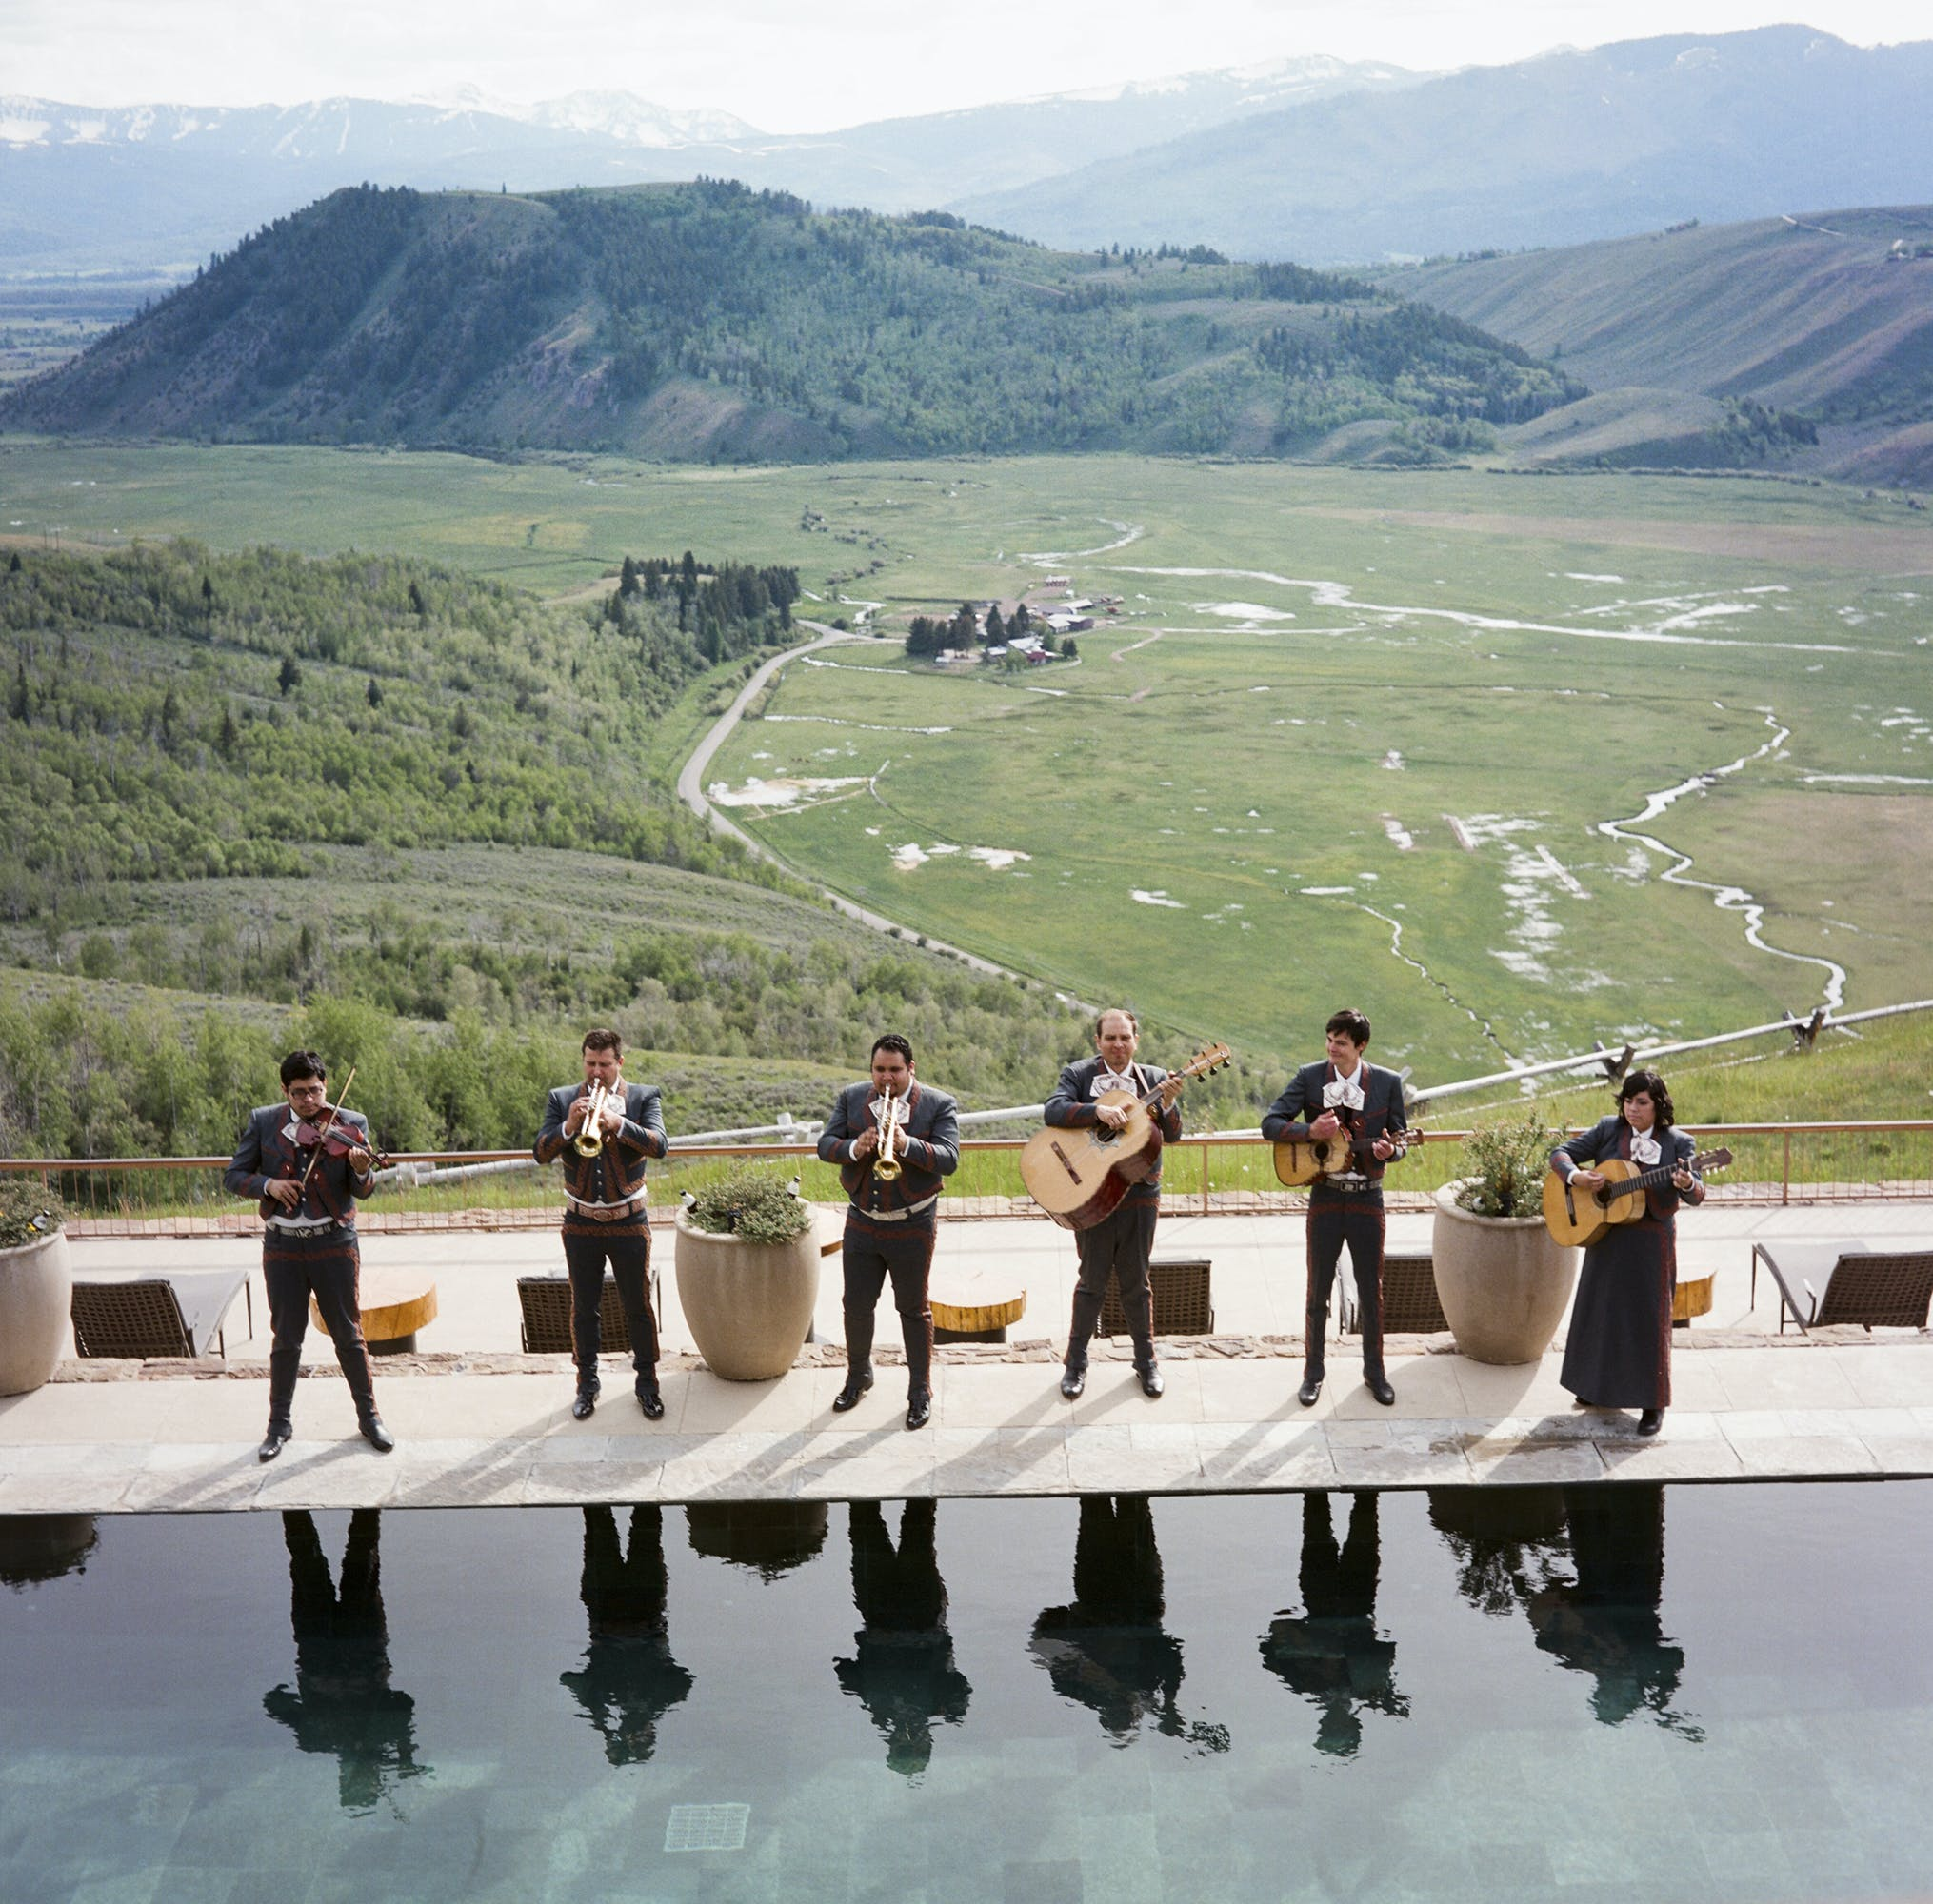 Band playing in front of scenic mountain view l PartySlate